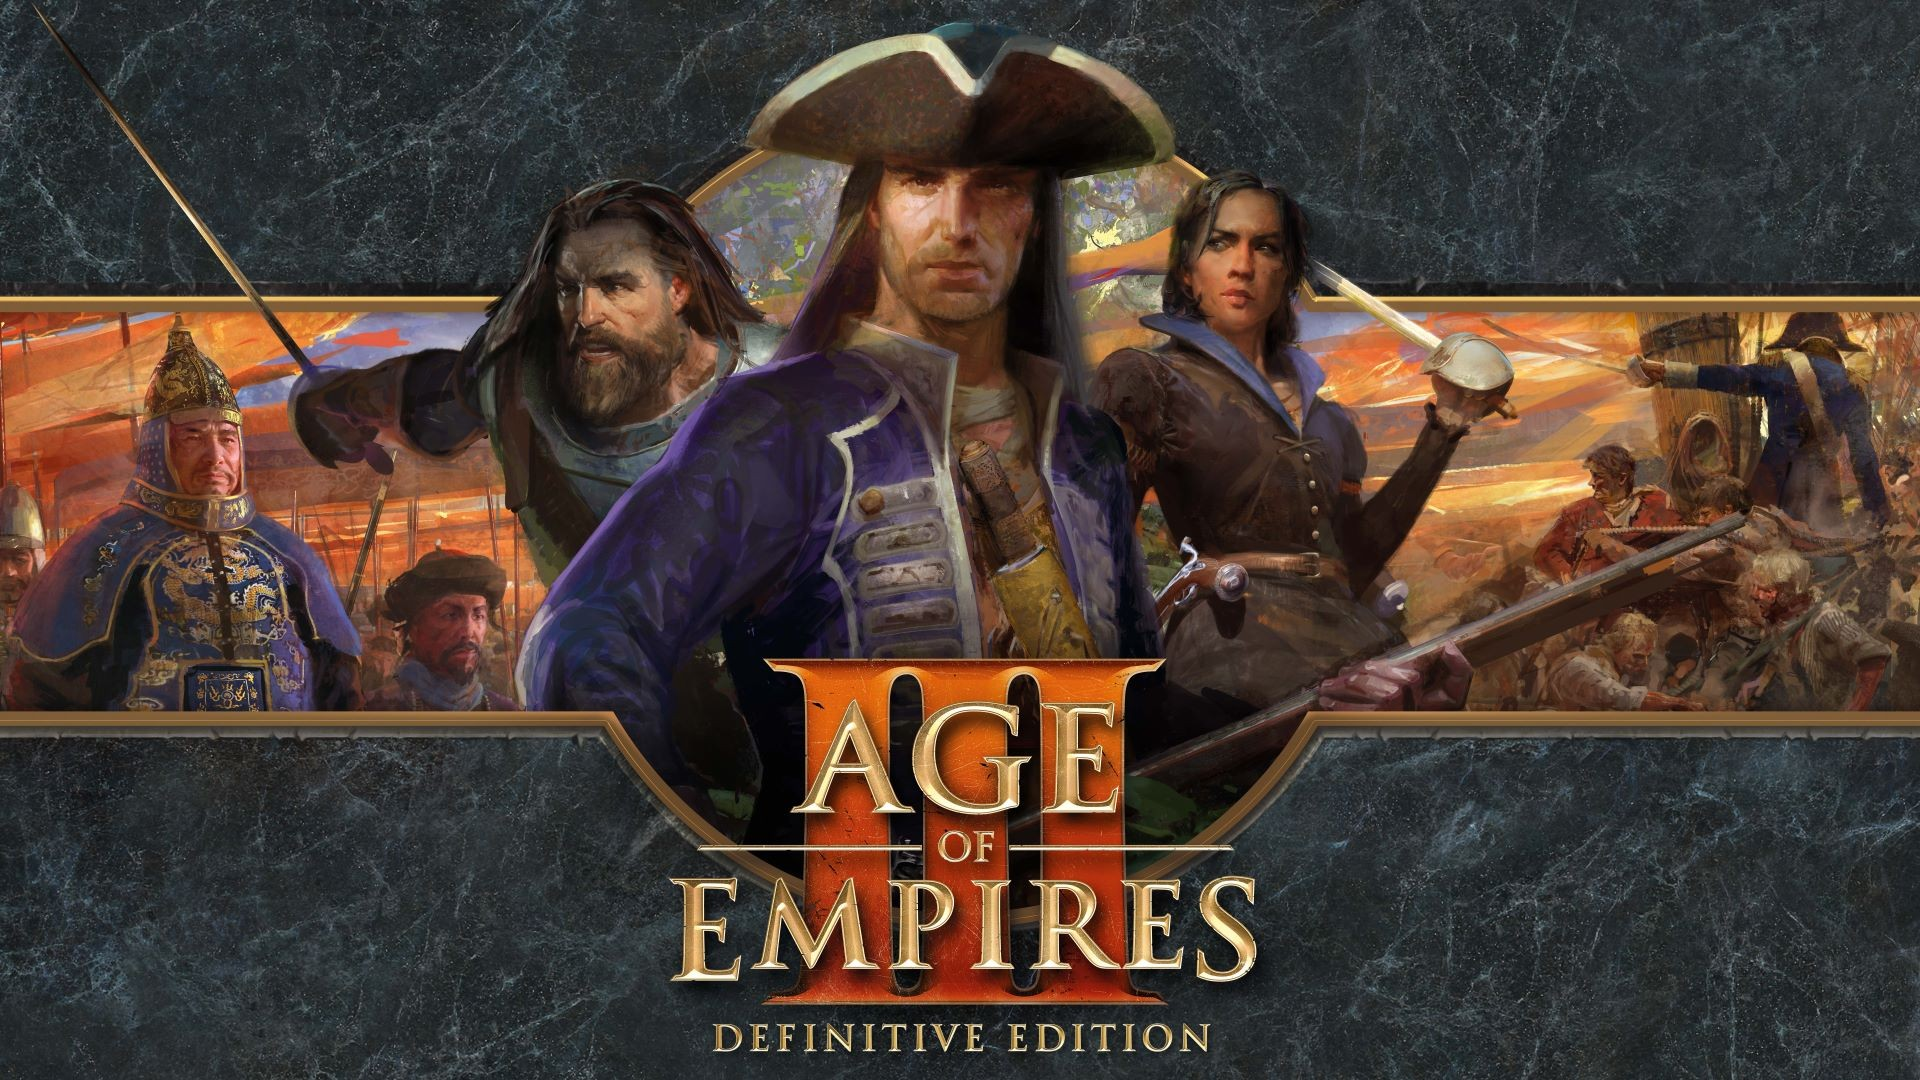 Video For Improving History with Age of Empires III: Definitive Edition